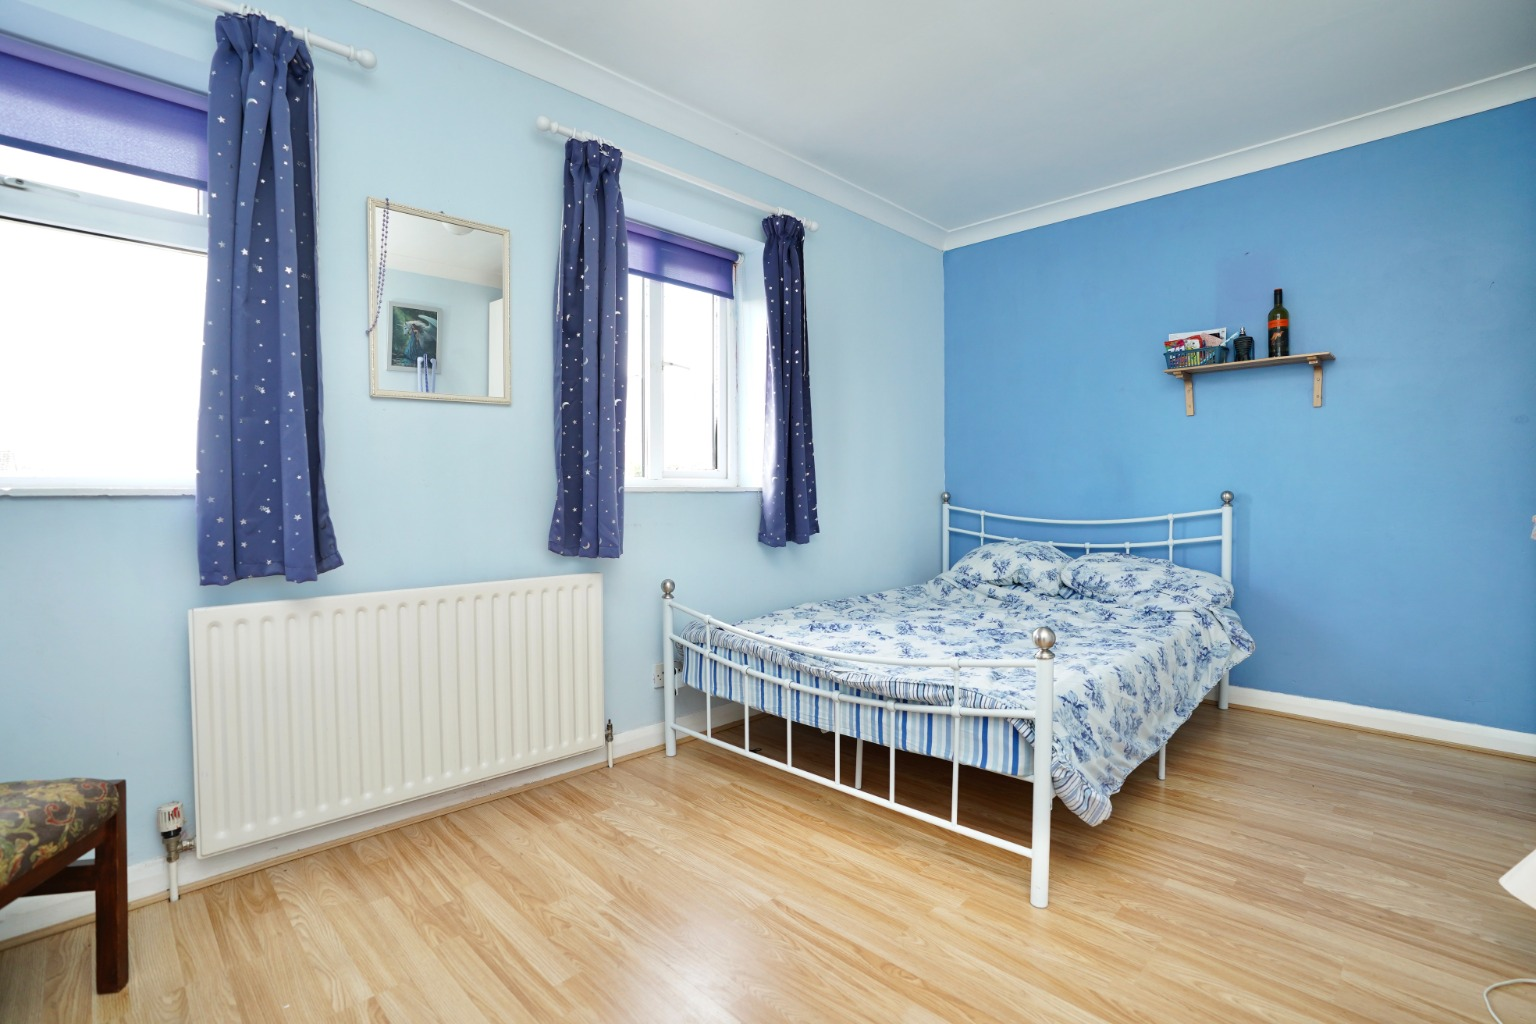 3 bed terraced house for sale in Leys Road, St. Neots  - Property Image 5